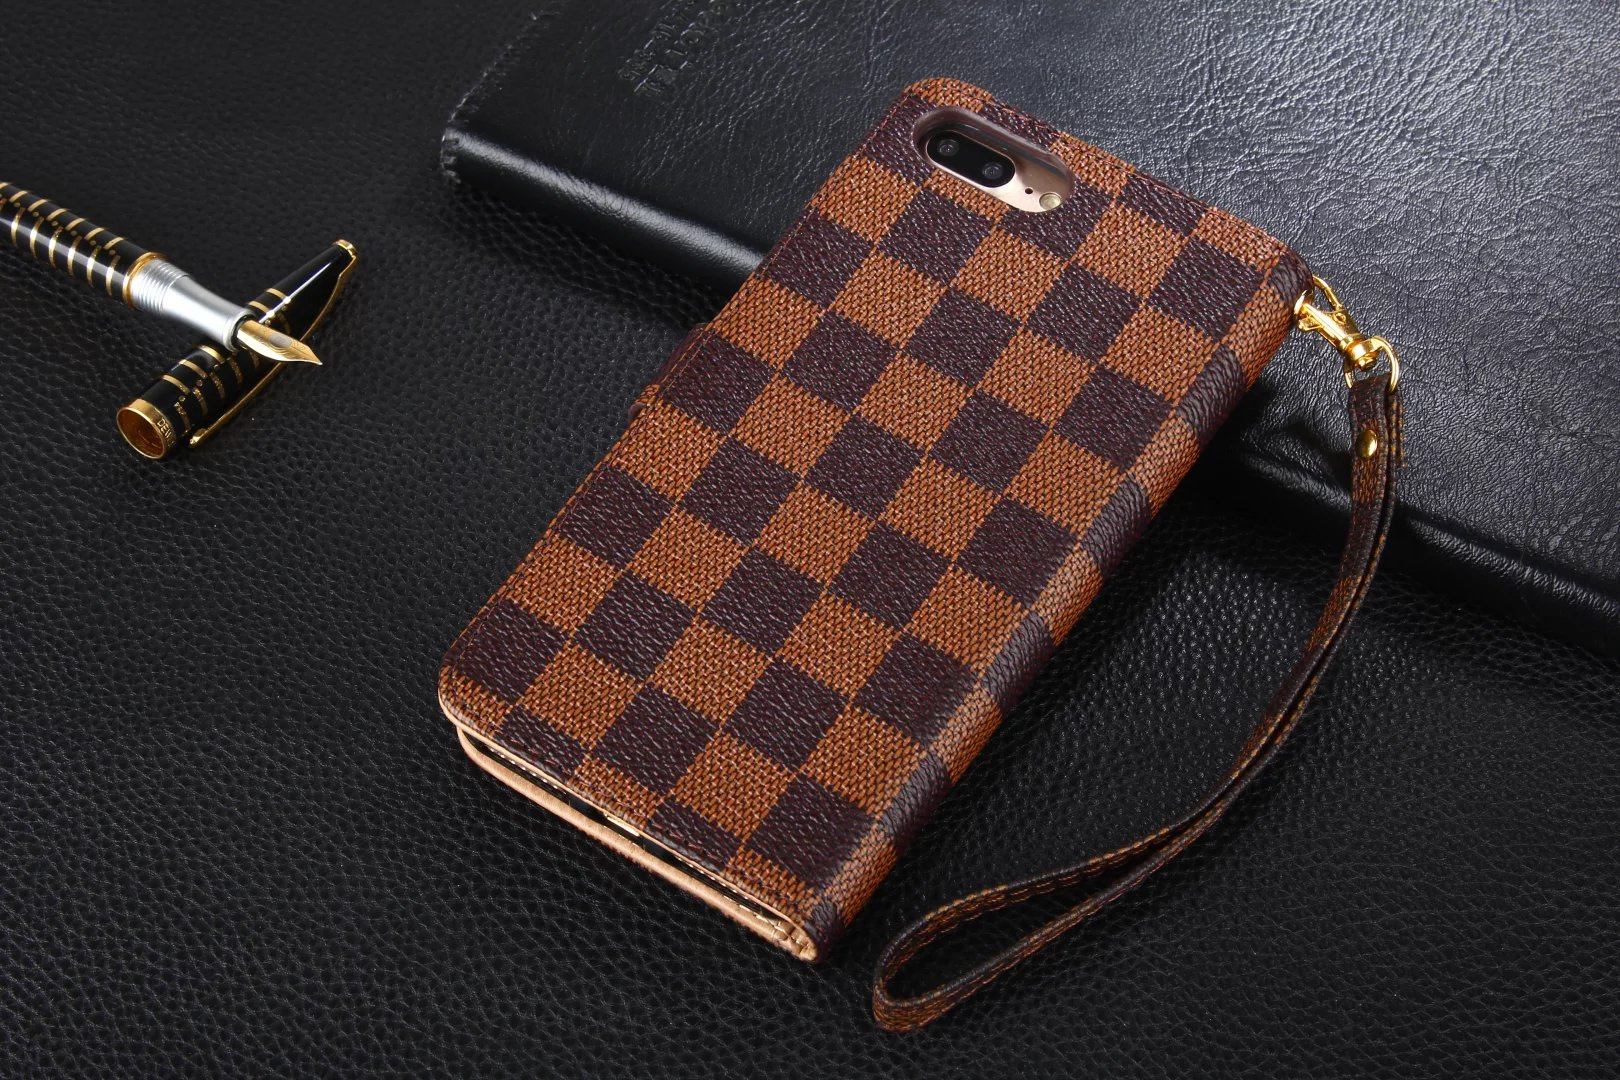 iphone hülle online shop iphone case mit foto Louis Vuitton iphone7 hülle iphone neu silikon bumper iphone 7 schutzhülle mit eigenem foto handy cover iphone 7 elbst gestalten iphone 6 hüllen iphone 7 flip ca7 bunt